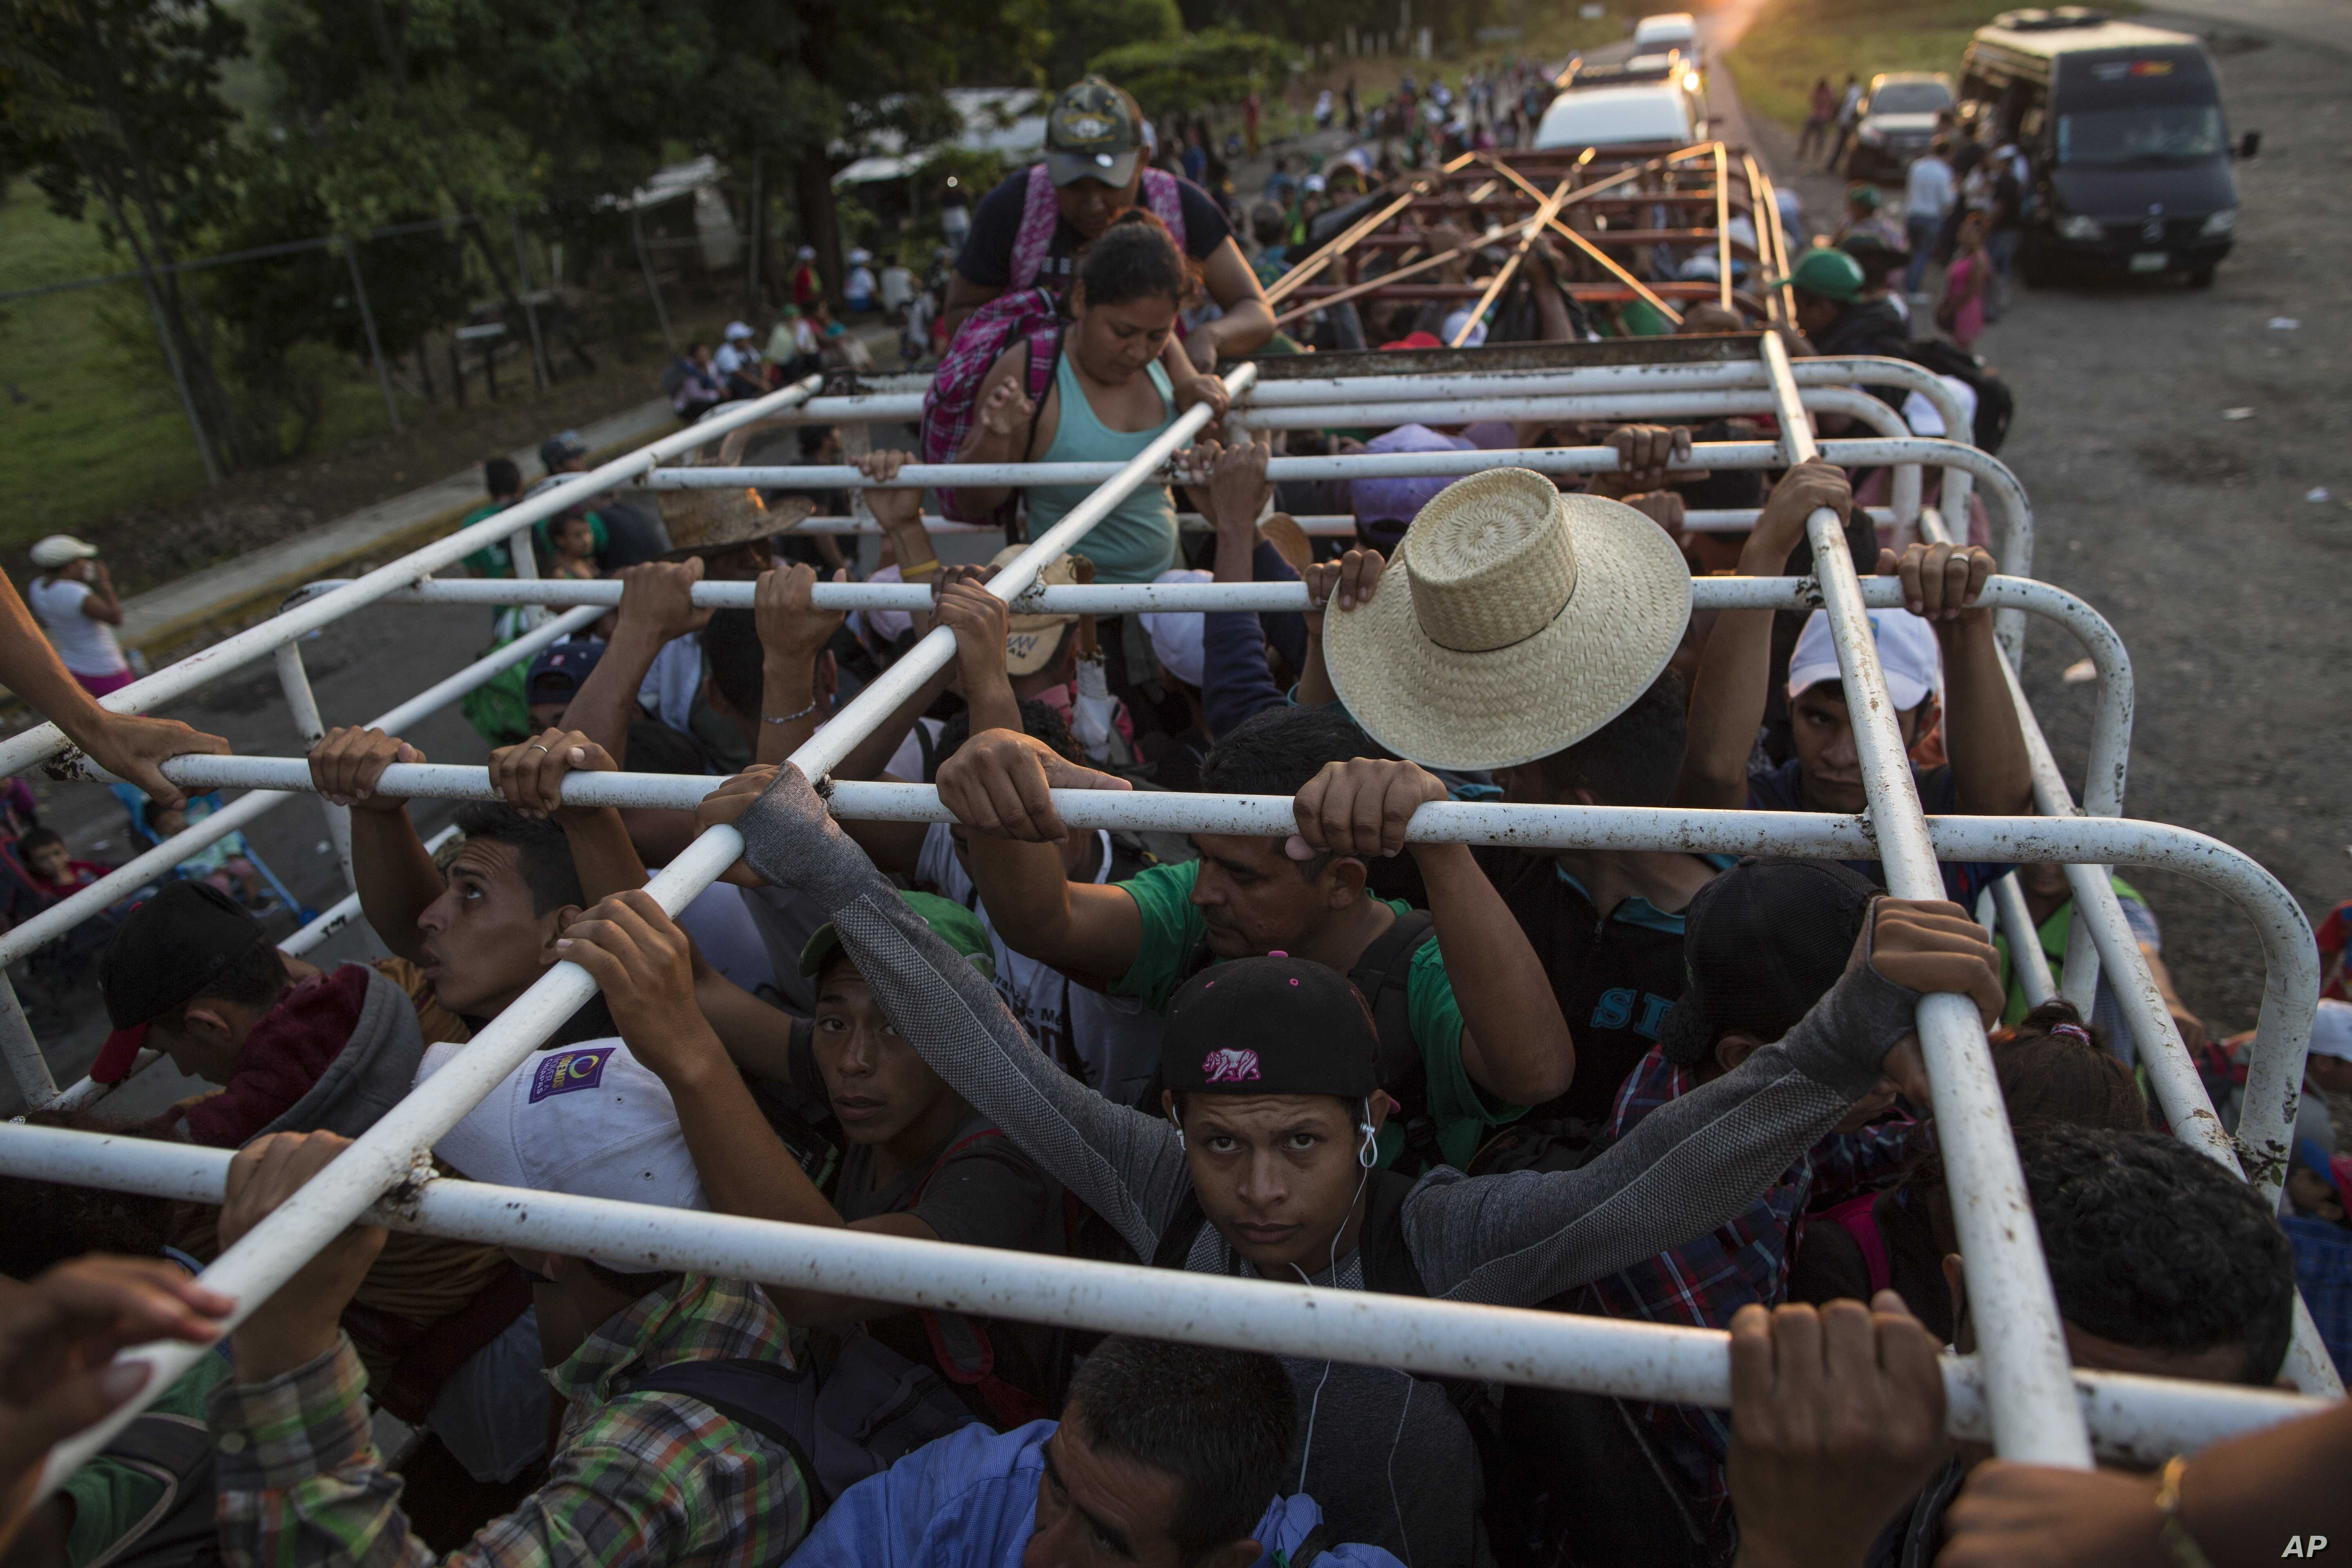 Migrants travel on a cattle truck, as a thousands-strong caravan of Central American migrants slowly makes its way toward the U.S. border, between Pijijiapan and Arriaga, Mexico, Oct. 26, 2018.